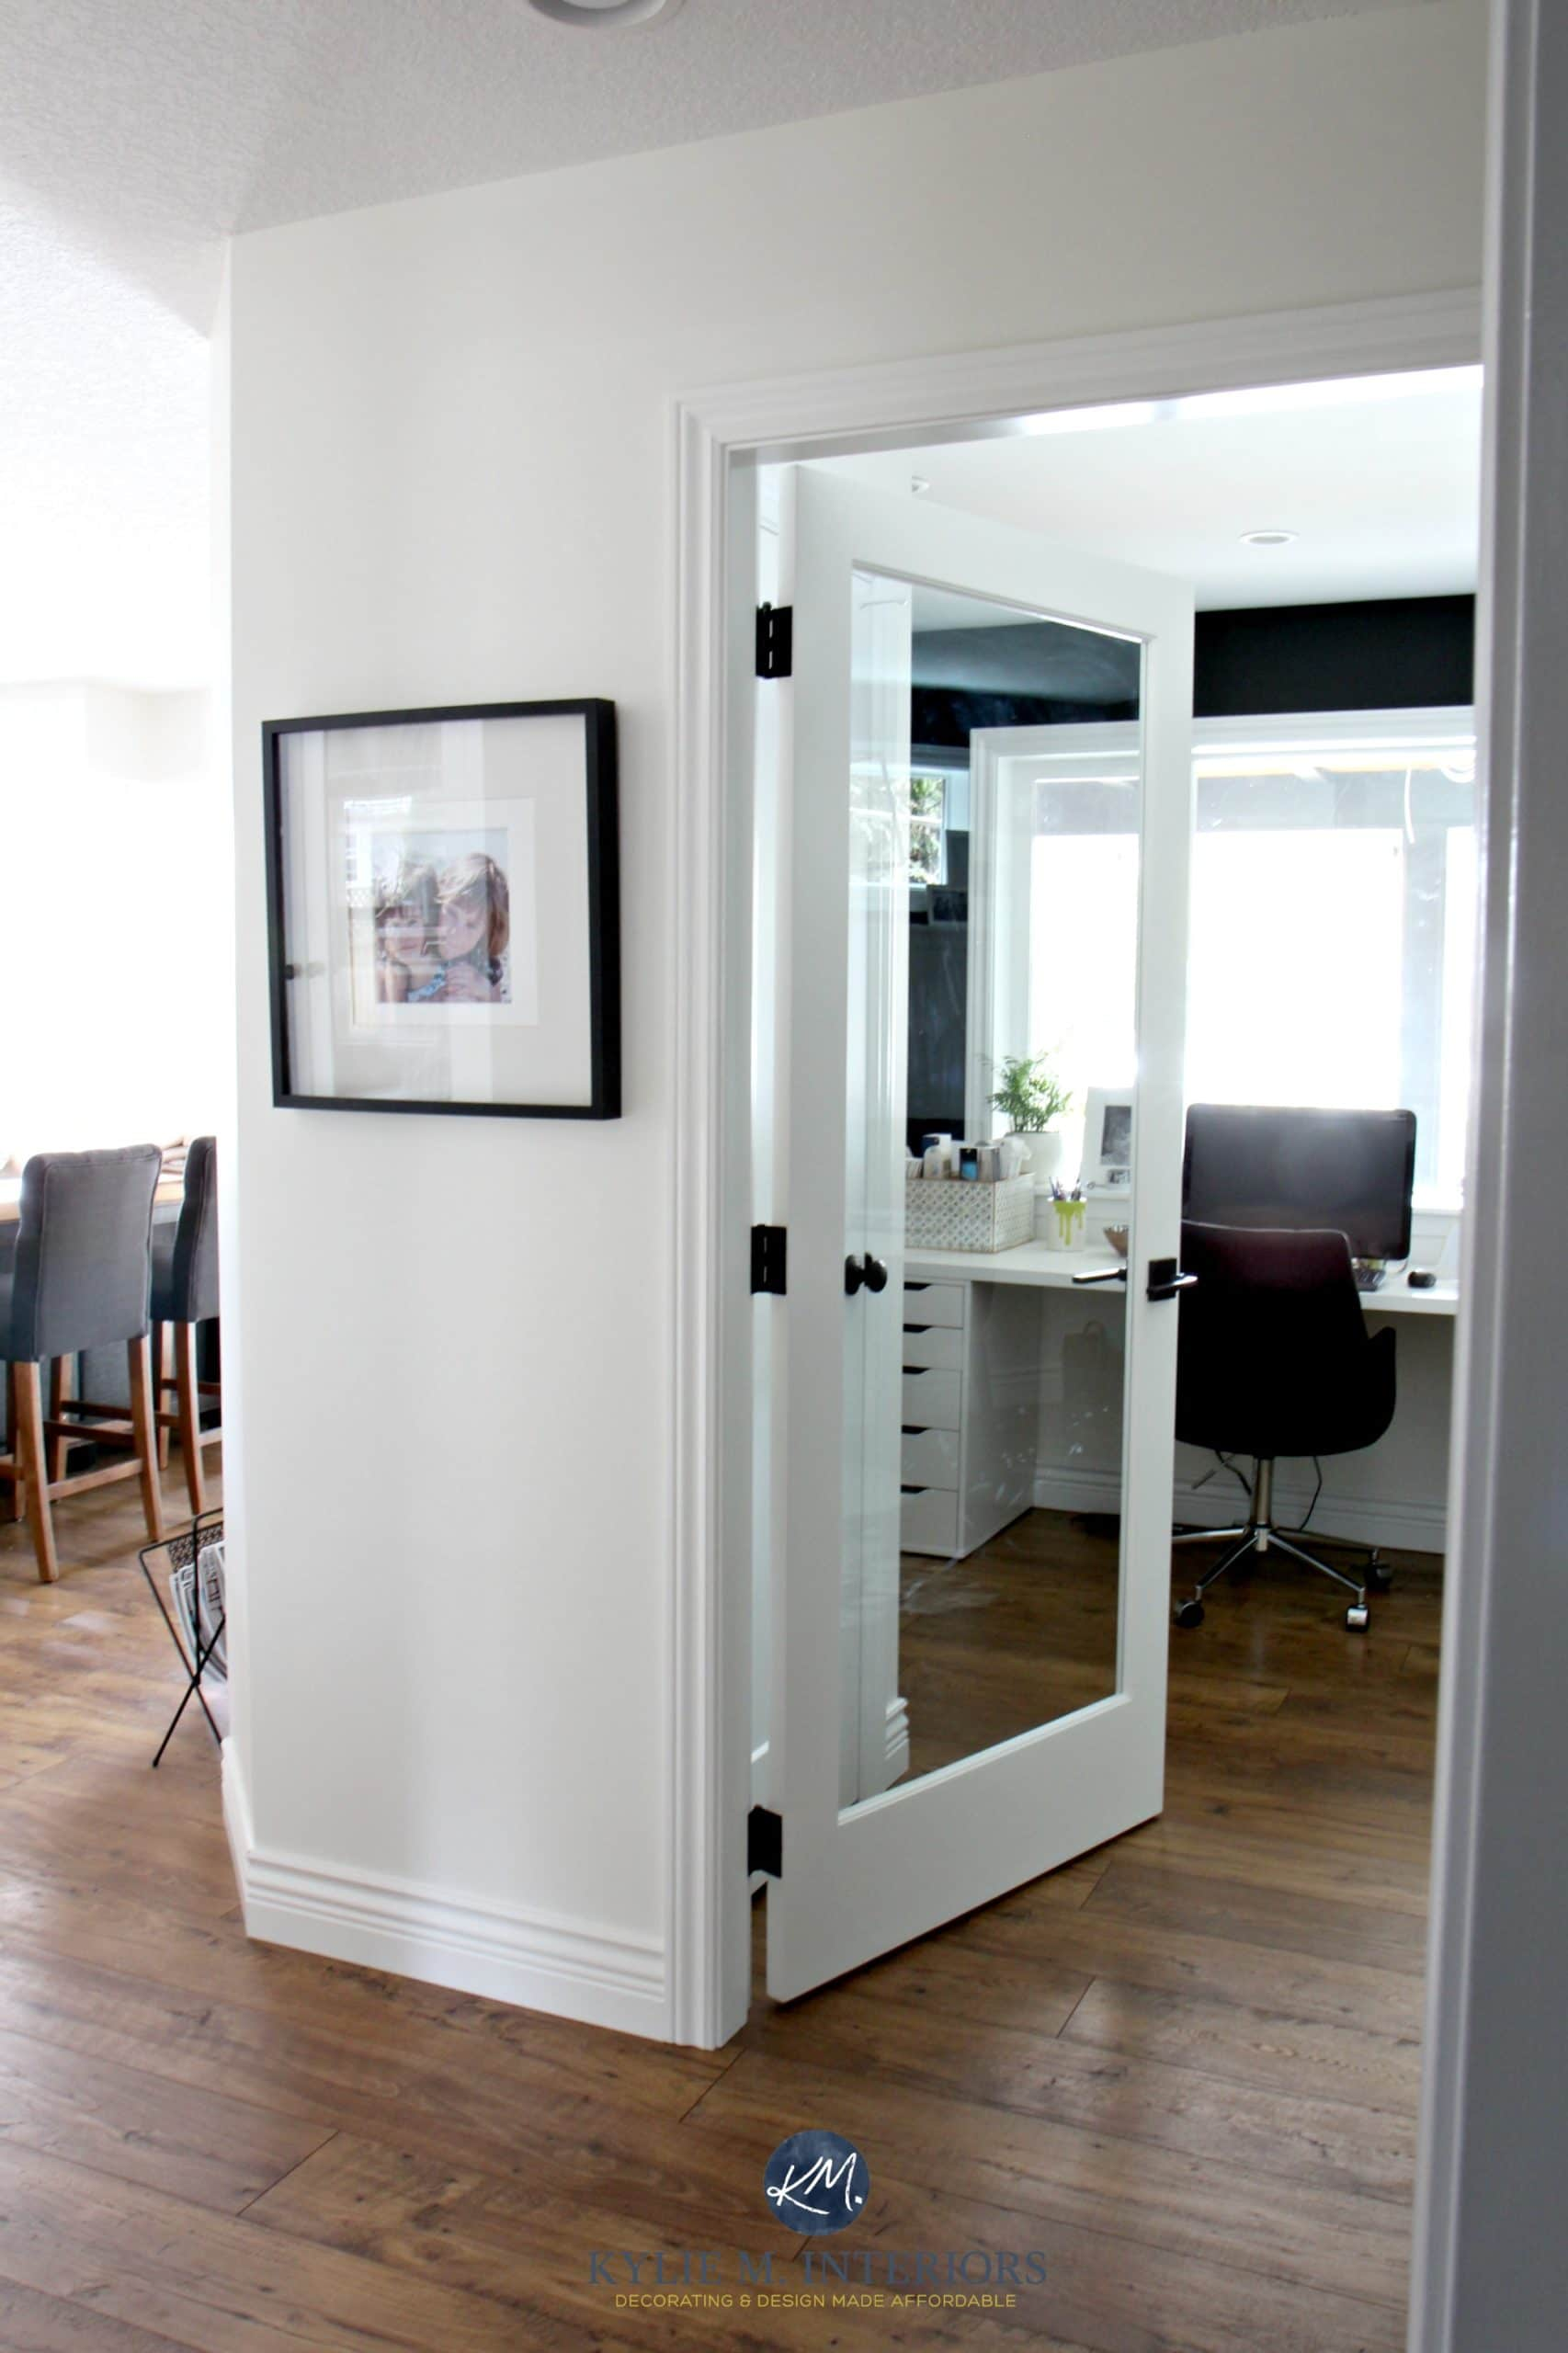 Especial Sherwin Williams Creamy Color Consulting Sherwin Williams Creamy Blackfeature Or Accent Kylie M Interiors Glass French Door Into Home Office With Glass French Door Into Home Office houzz-03 Sherwin Williams Creamy